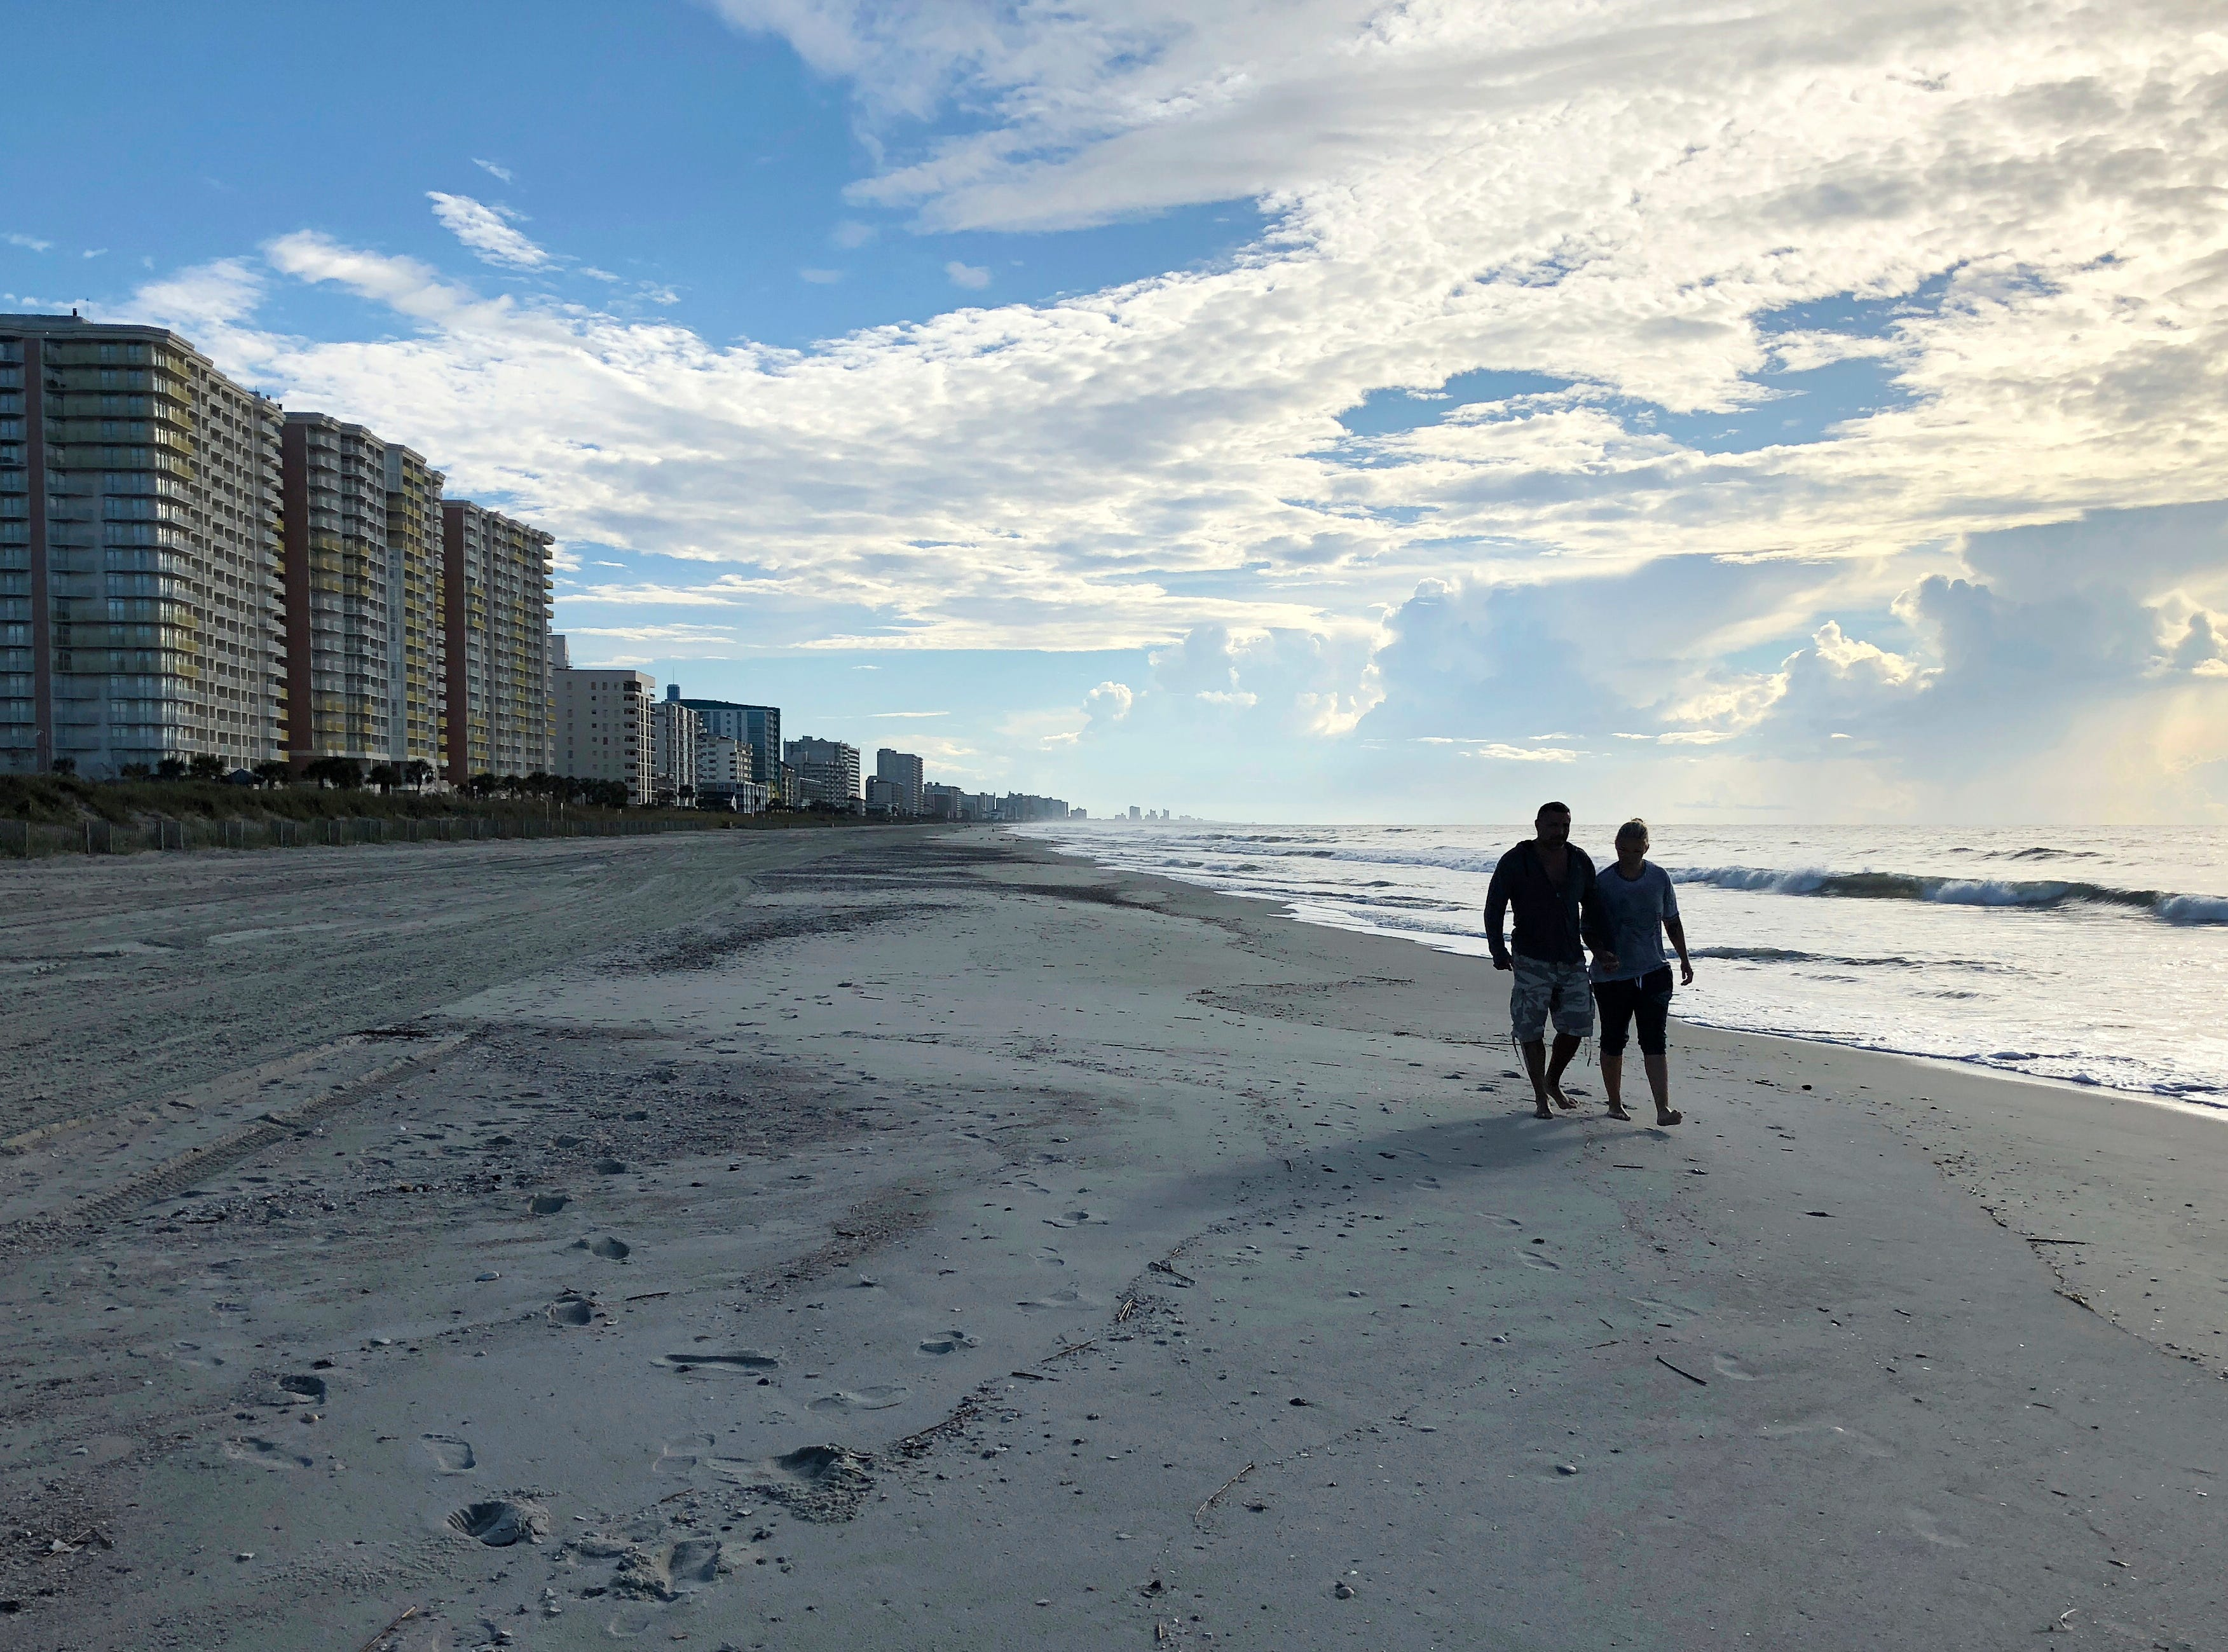 Chris and Nicole Roland walk down a beach in North Myrtle Beach, S.C. on Wednesday, Sept. 12, 2018. The couple boarded up their uncle's condominium and are leaving soon as Hurricane Florence approaches.